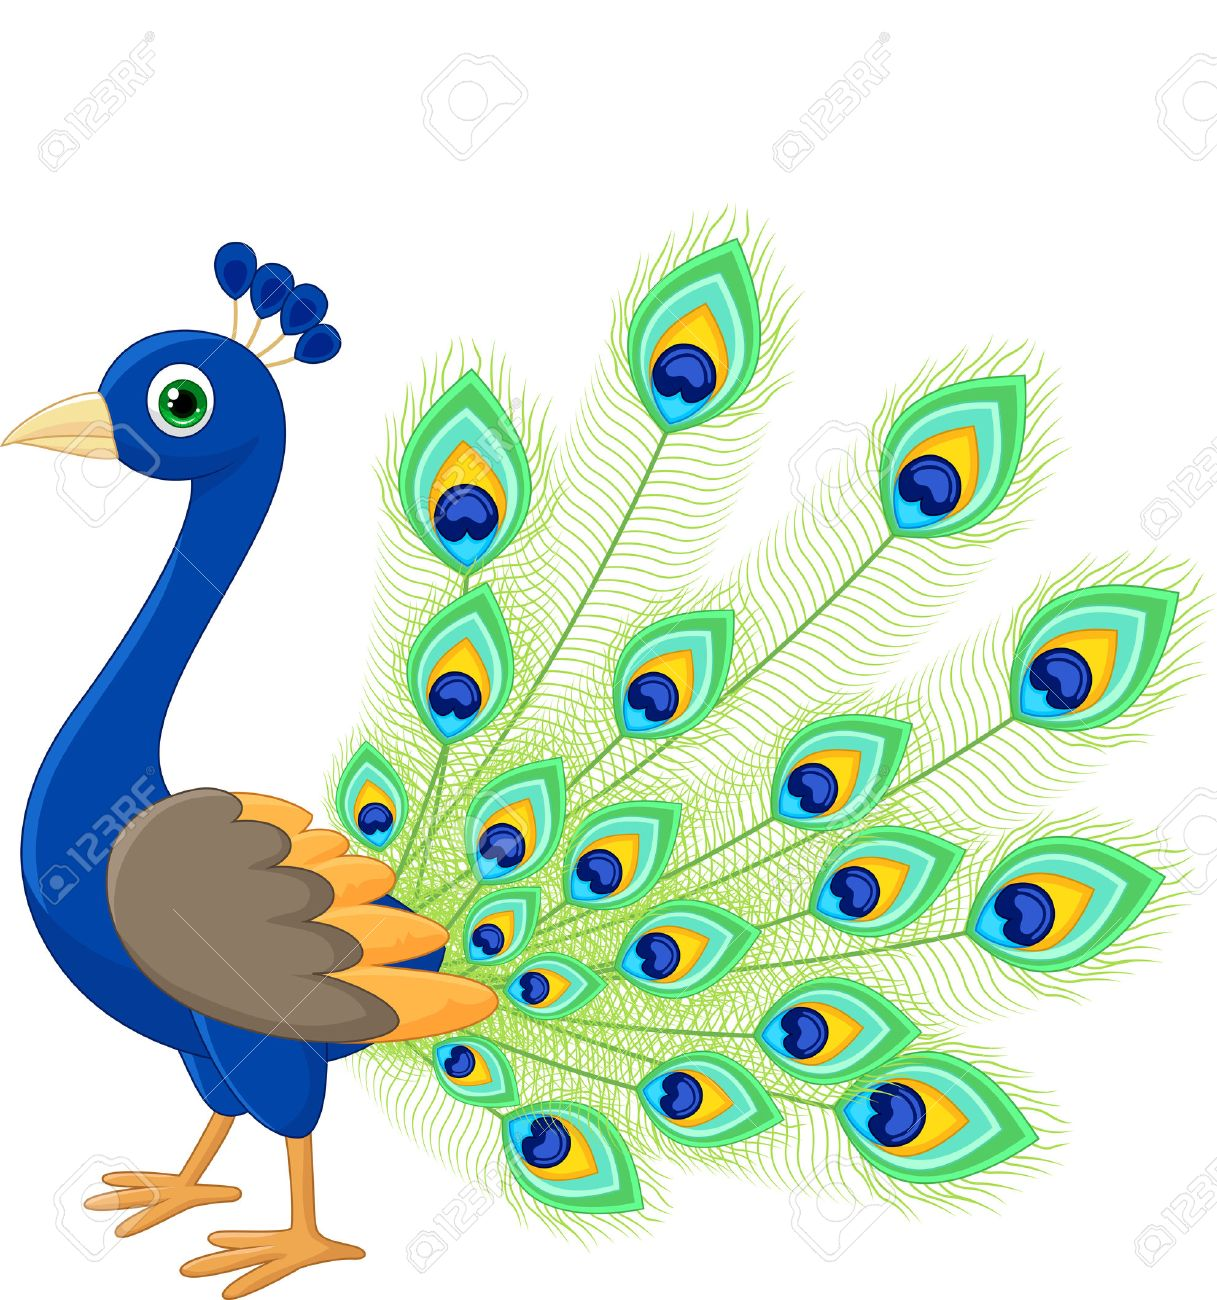 peacock cartoon royalty free cliparts vectors and stock rh 123rf com peacock clipart png peacock clipart png